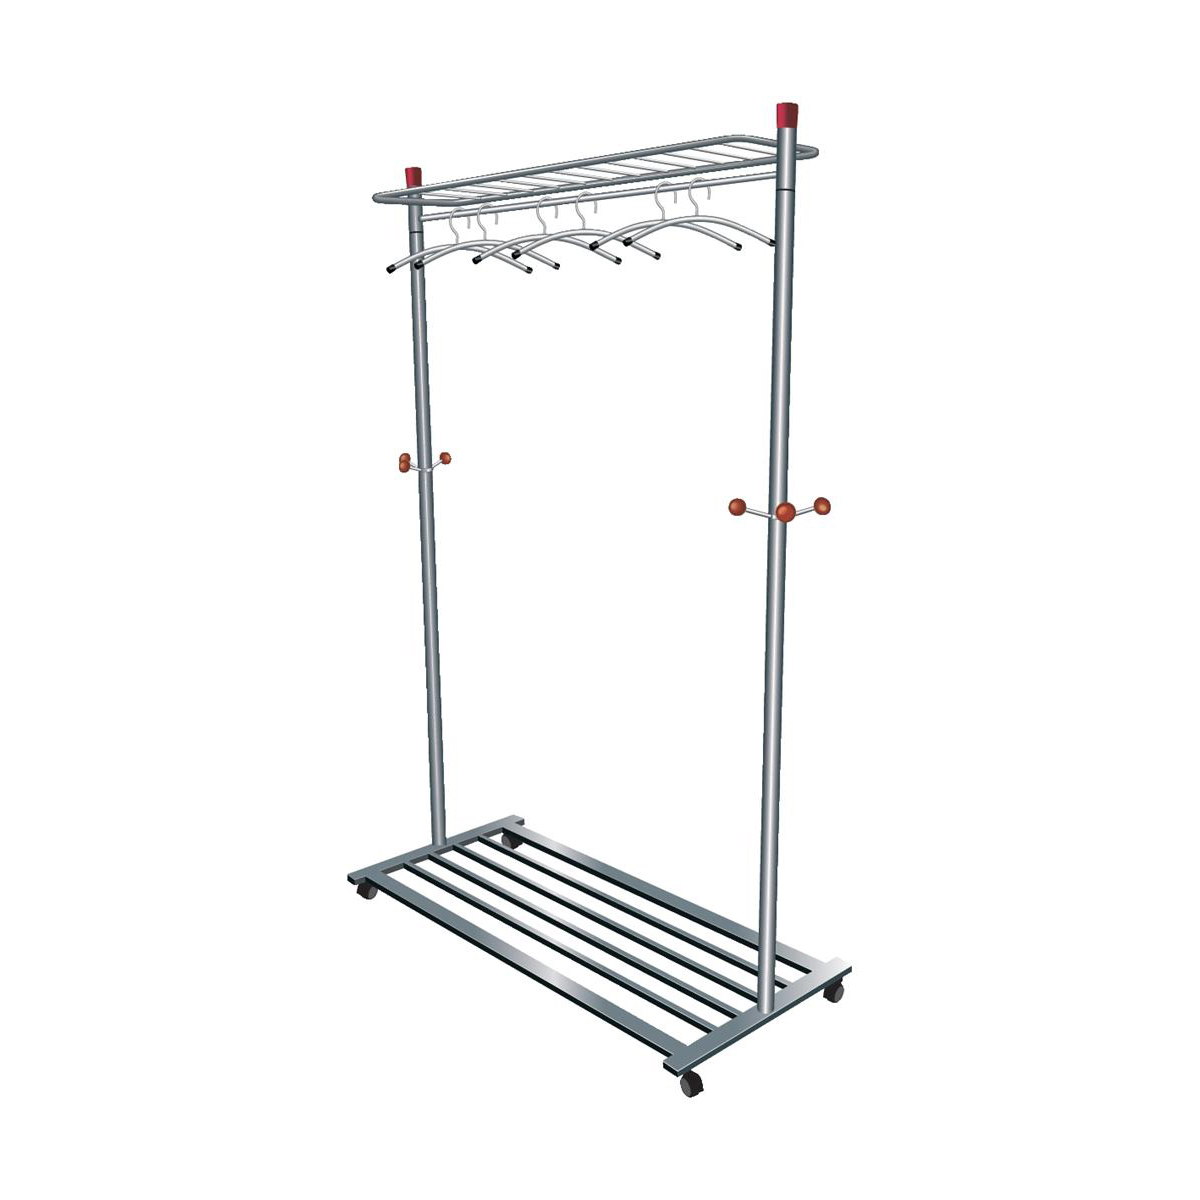 Coat Stands 5 Star Facilities Coat Rack Mobile 4 Wheels 3 Pegs Capacity 40-50 Hangers 1140x550x1800mm Silver